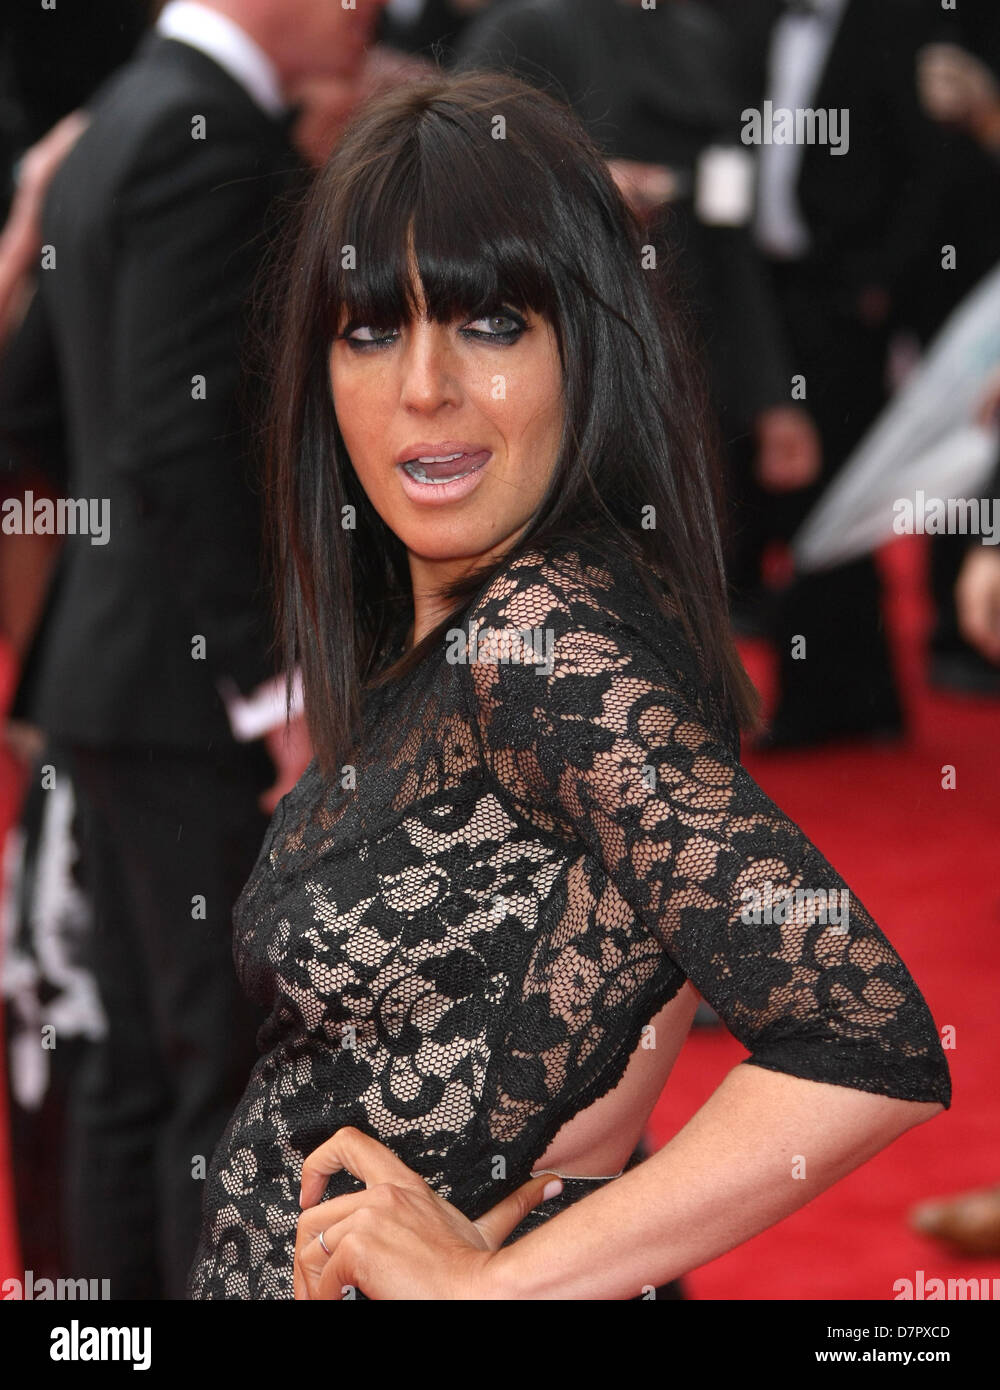 Claudia Winkleman nude photos 2019